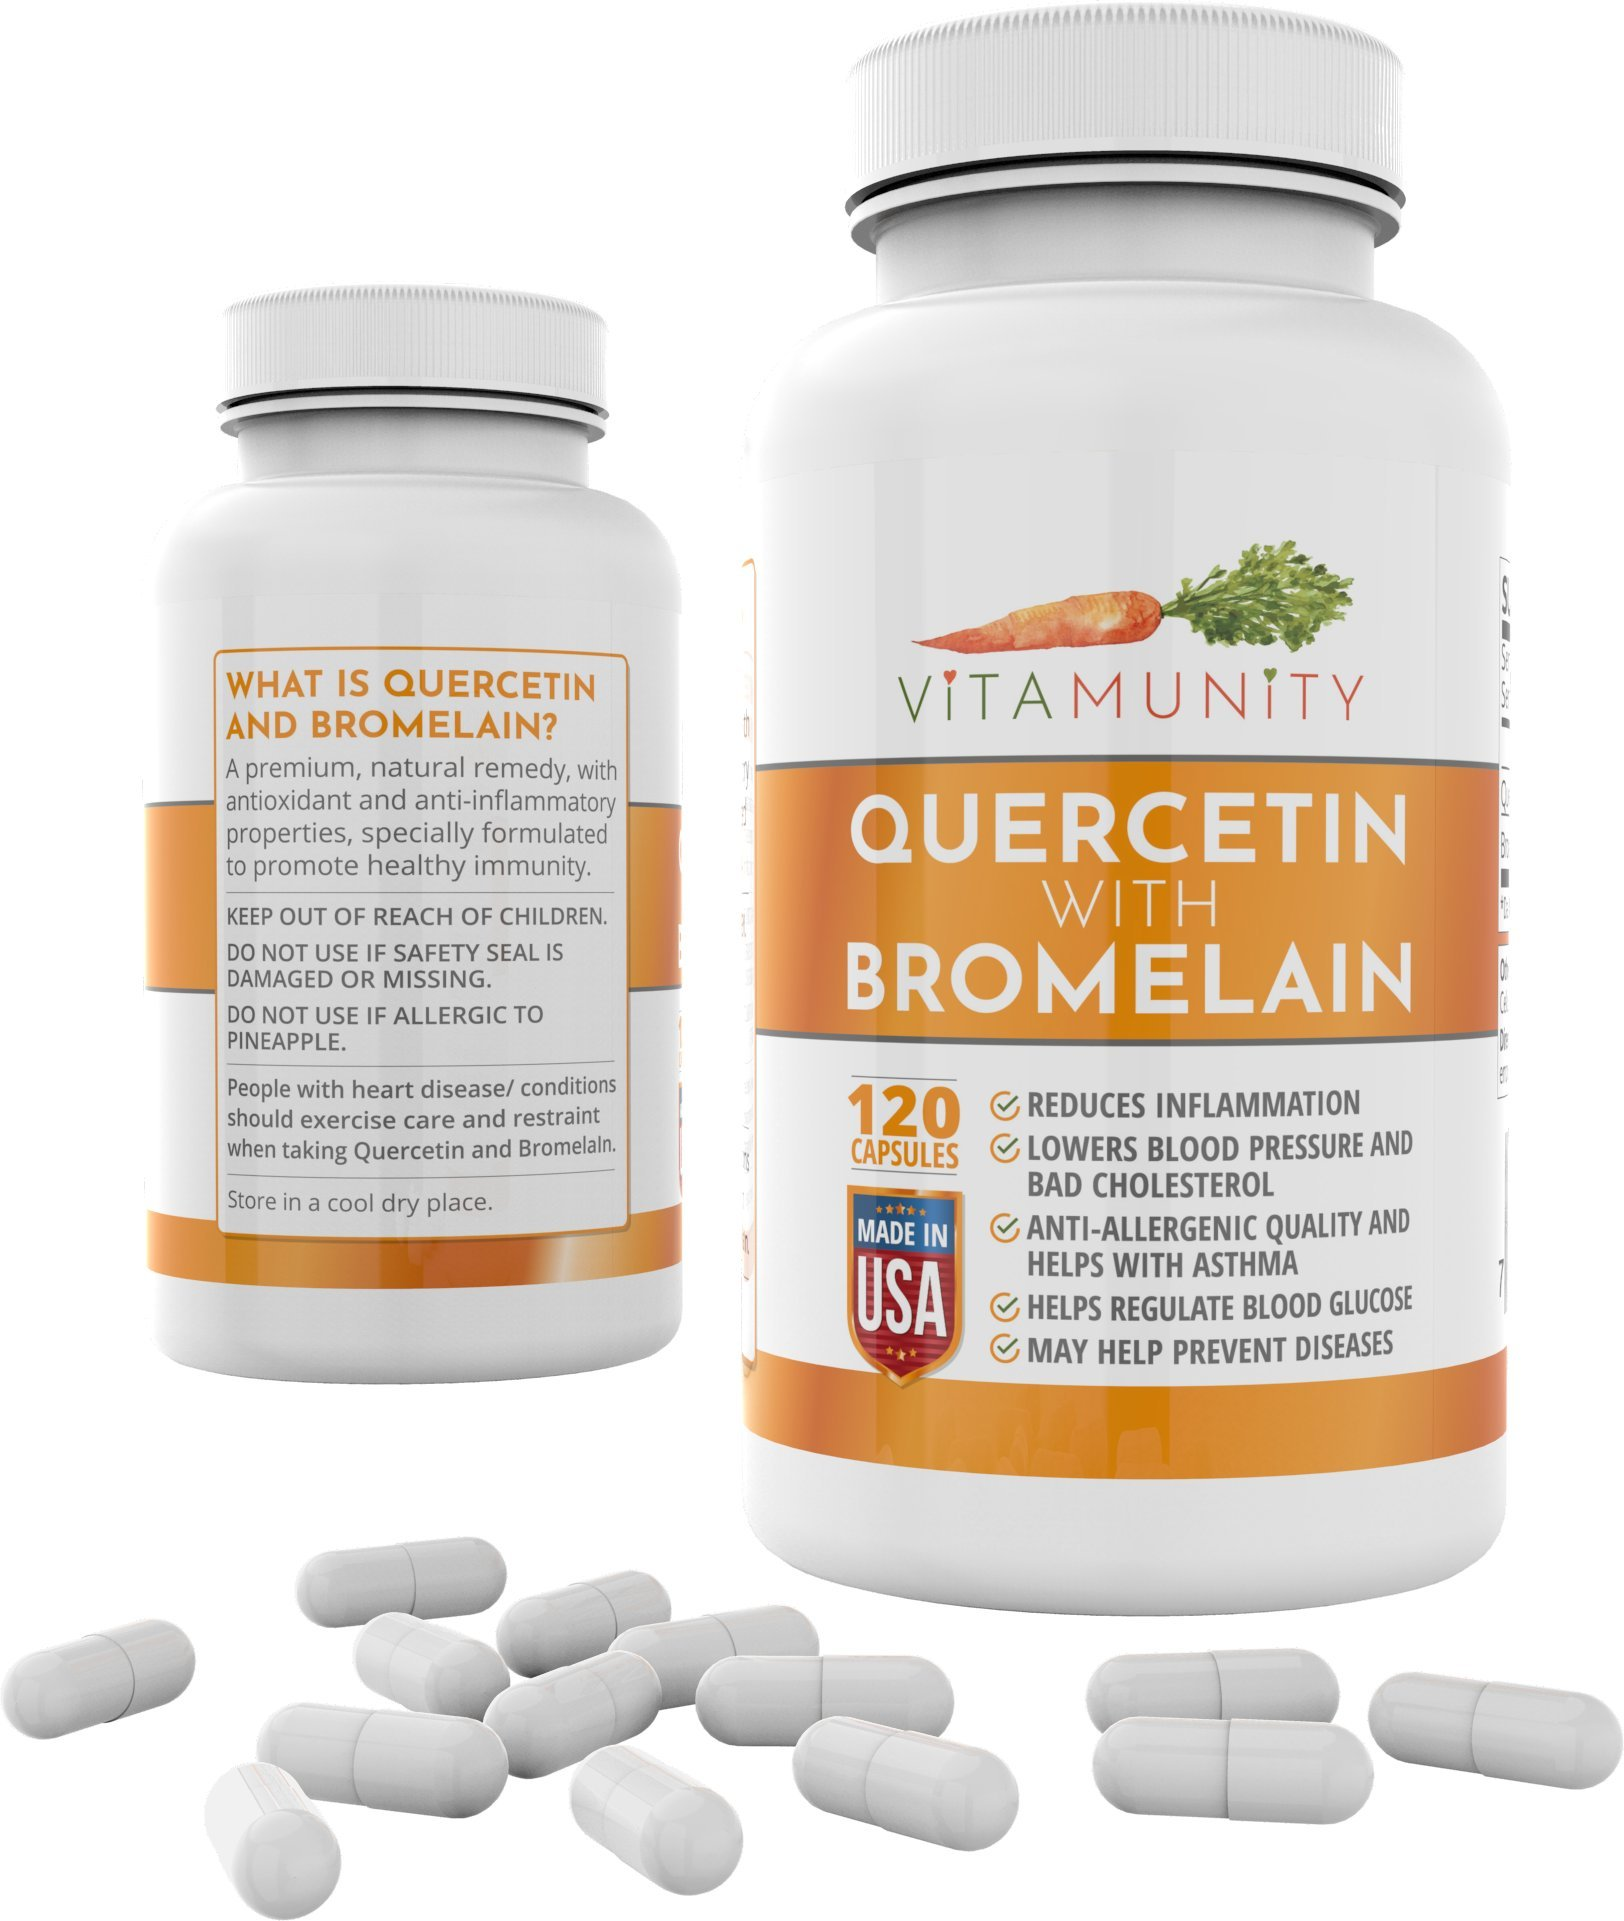 Quercetin with Bromelain by VitaMunity - Supports Immune and Heart Health, Fights Allergies, Lowers Inflammation - 800 Mg 120 Vegetarian Capsules